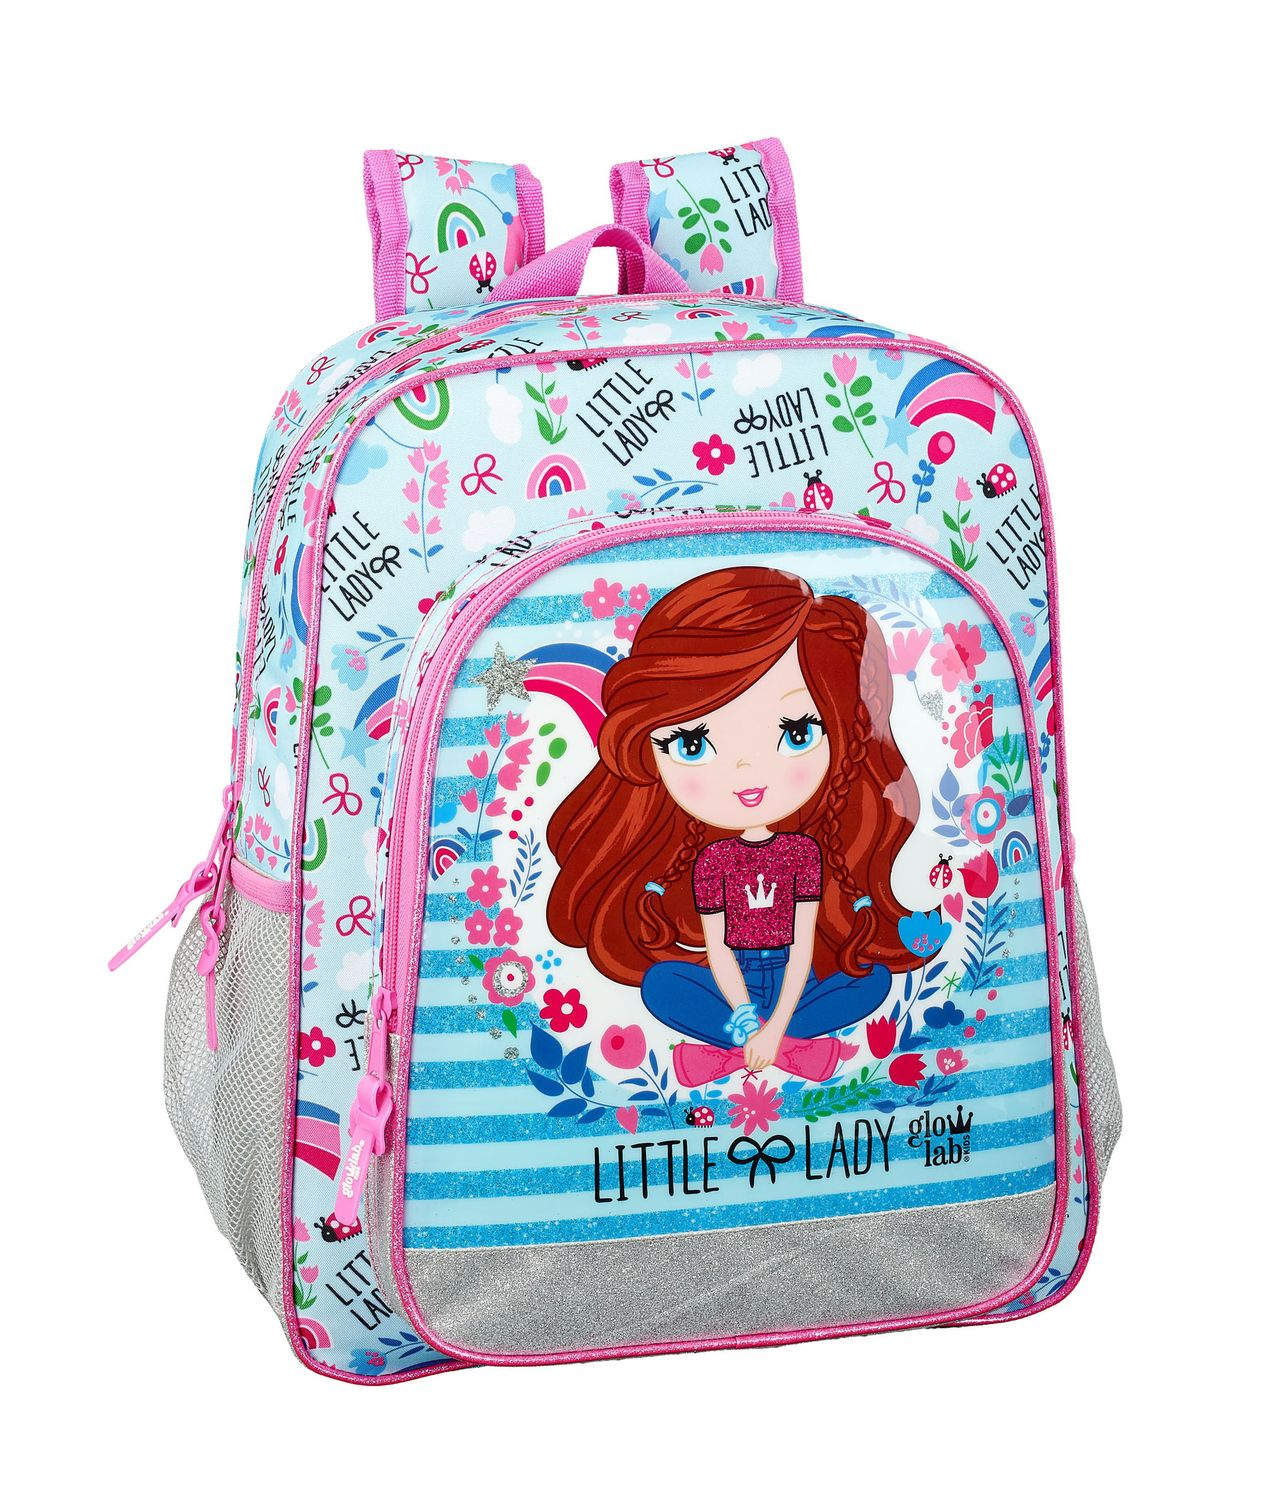 Junior Rucksack Backpack 38 cm Glowlab KIDS – image 1